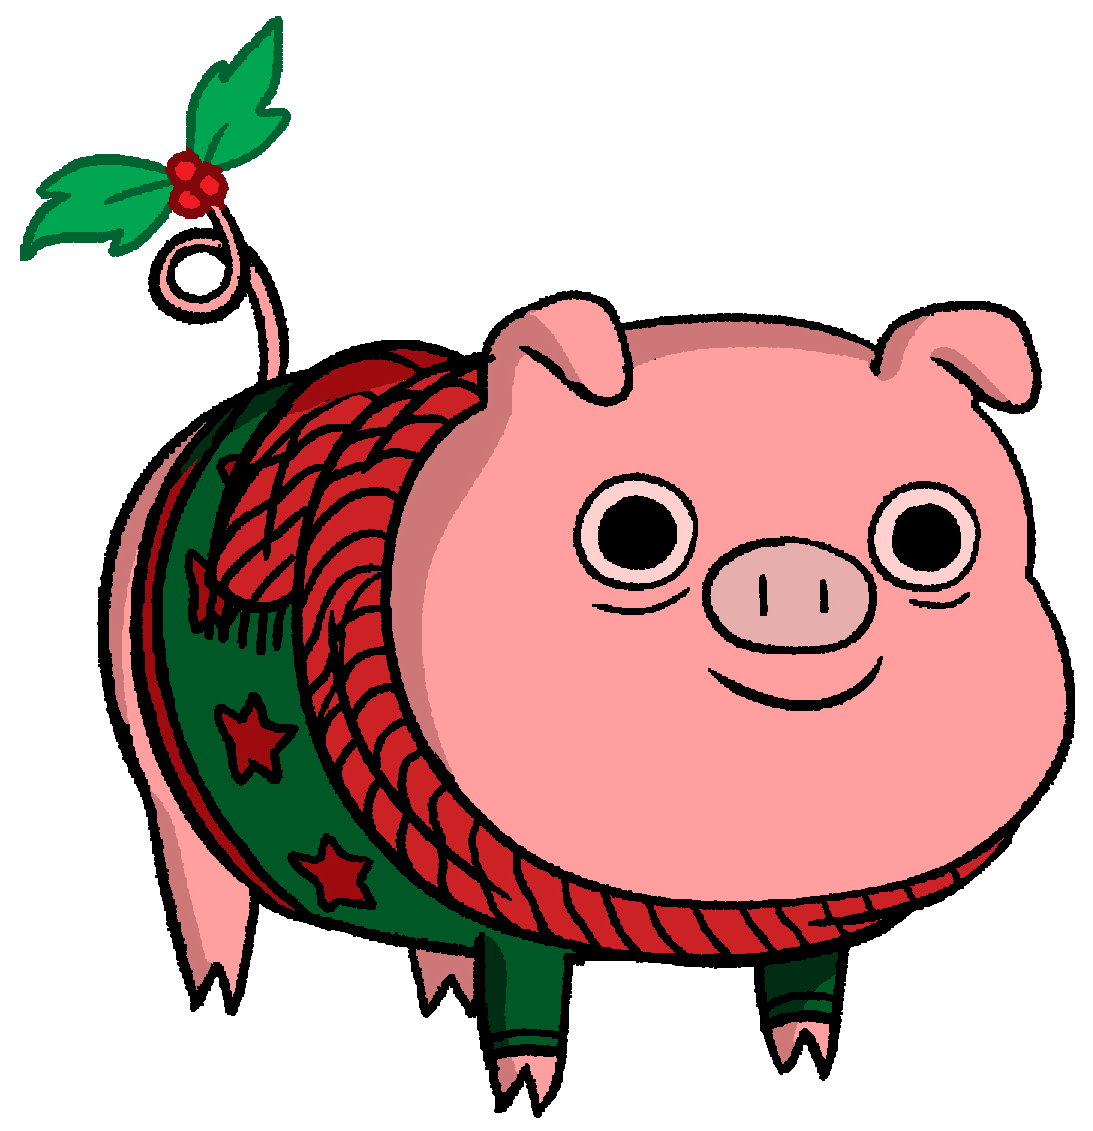 Christmas pig clipart clipart images gallery for free download.